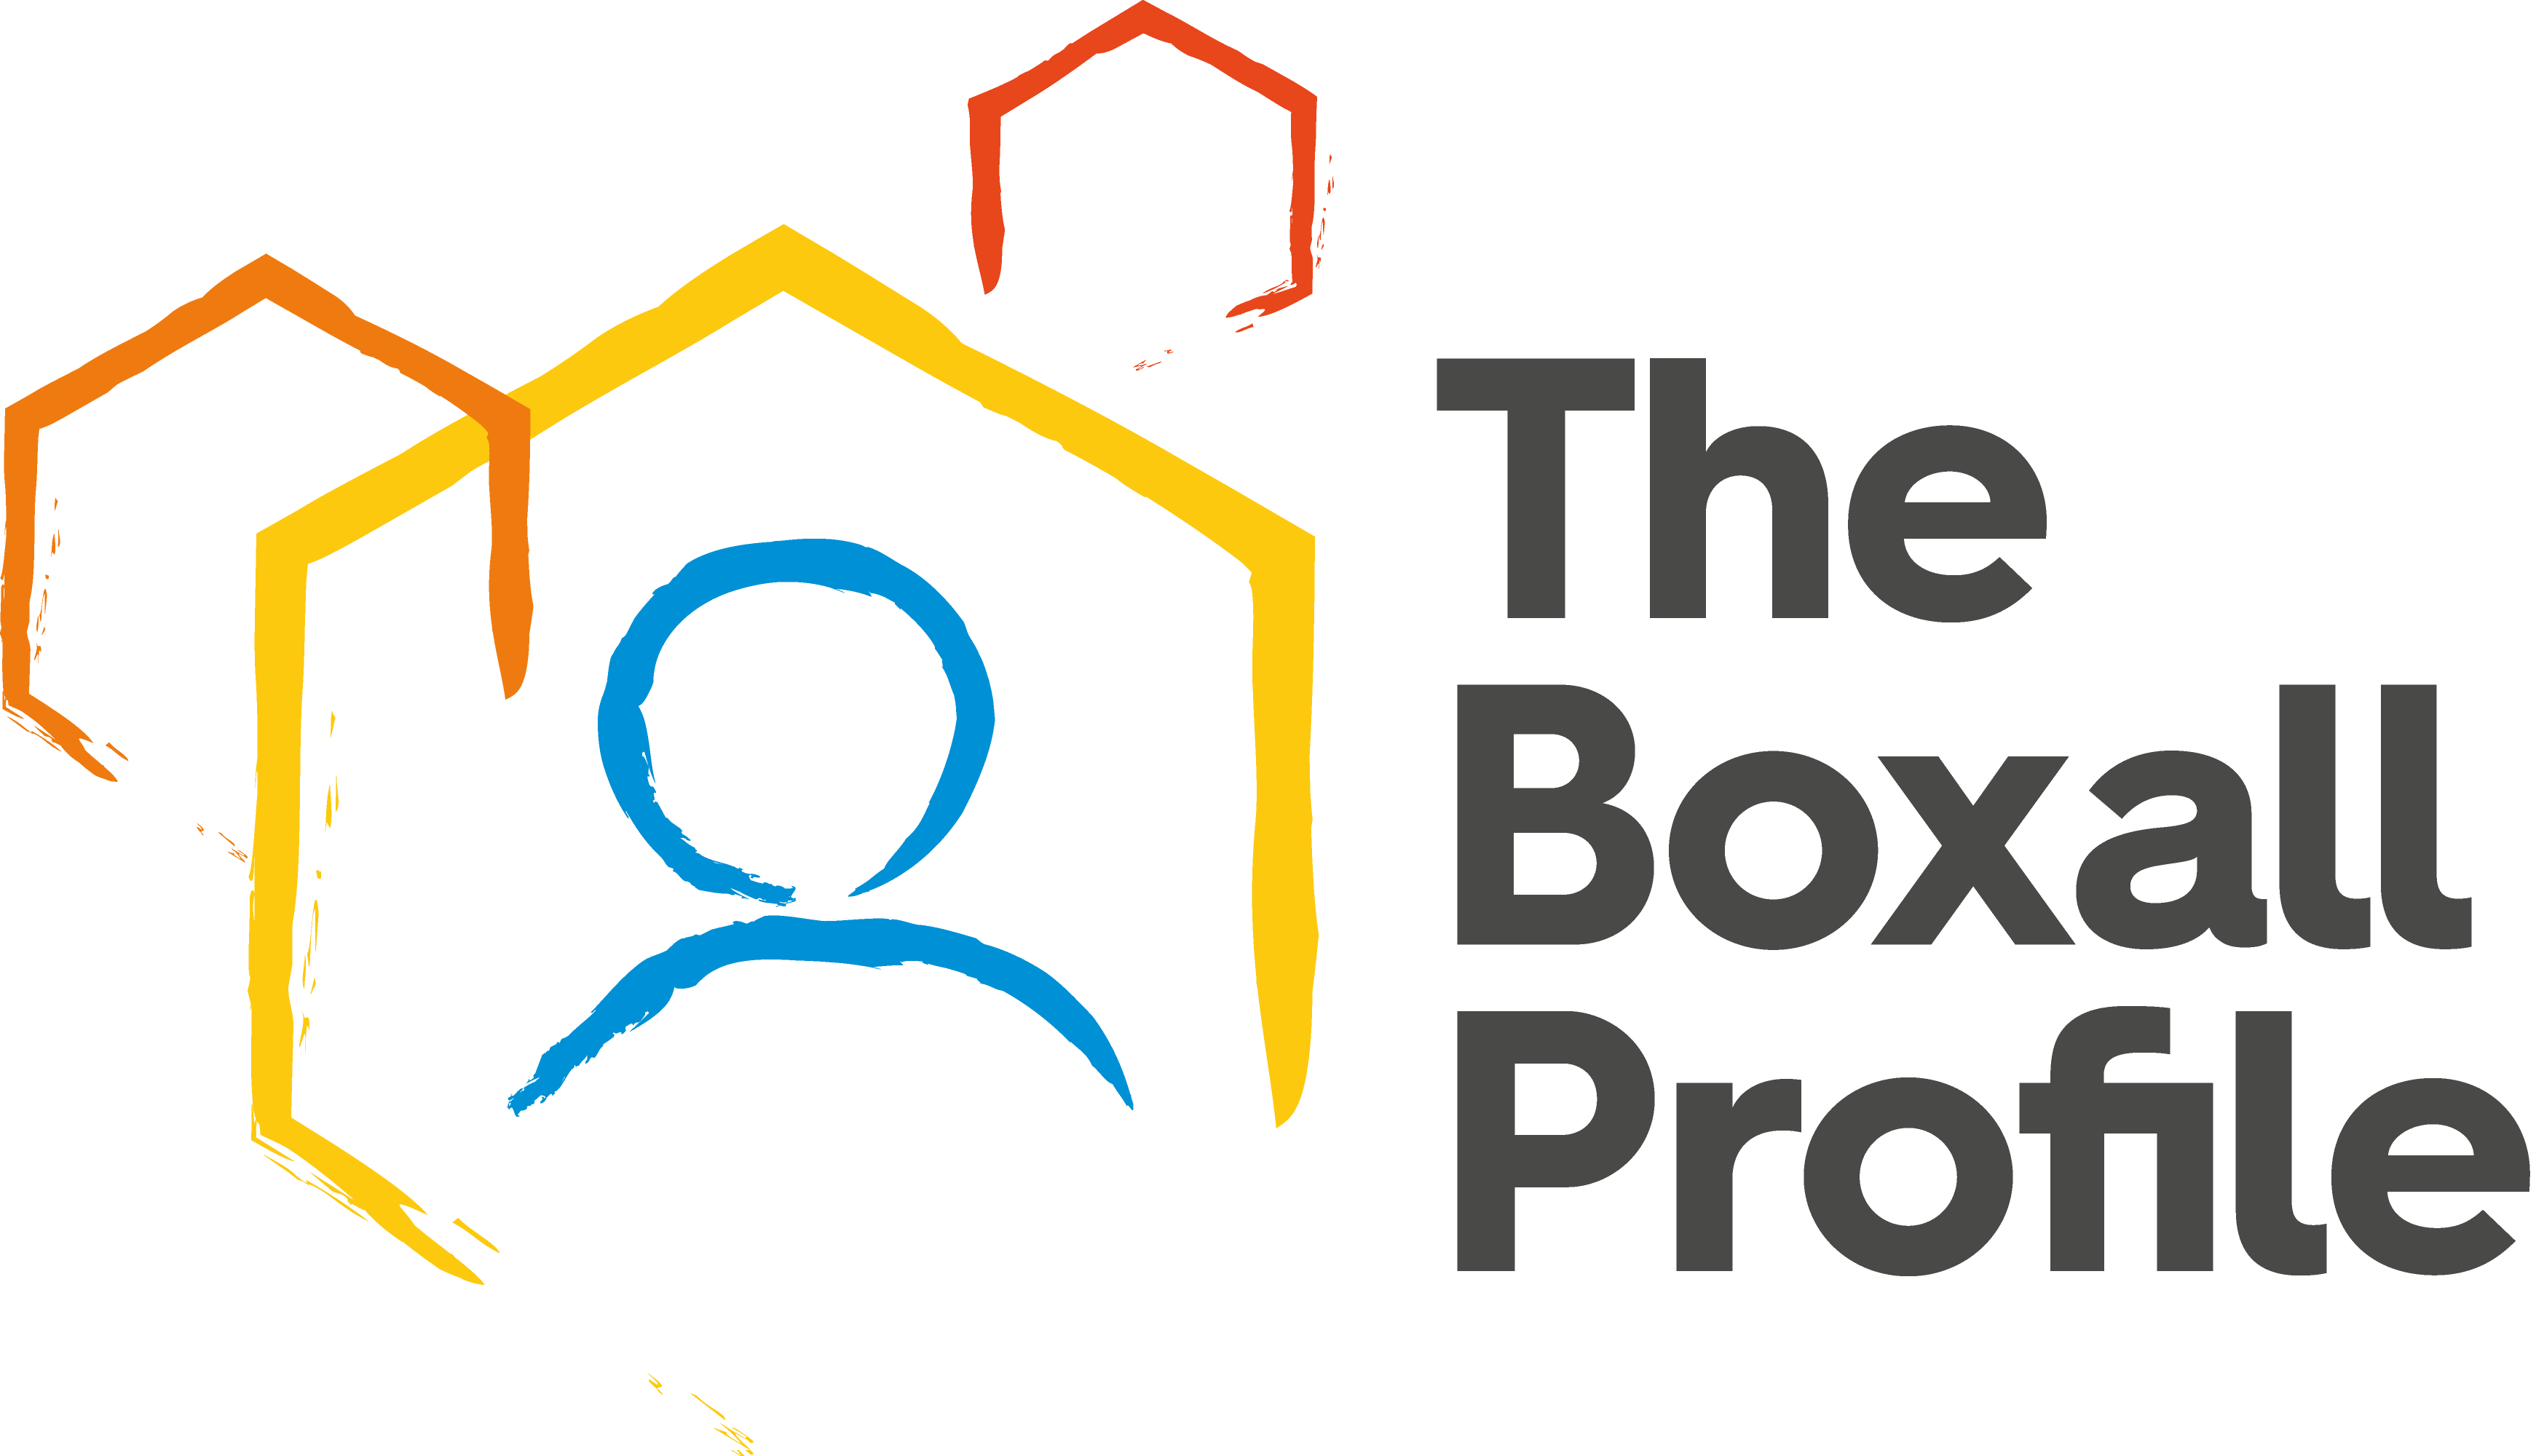 Help Centre - Boxall Profile Online Help Centre home page